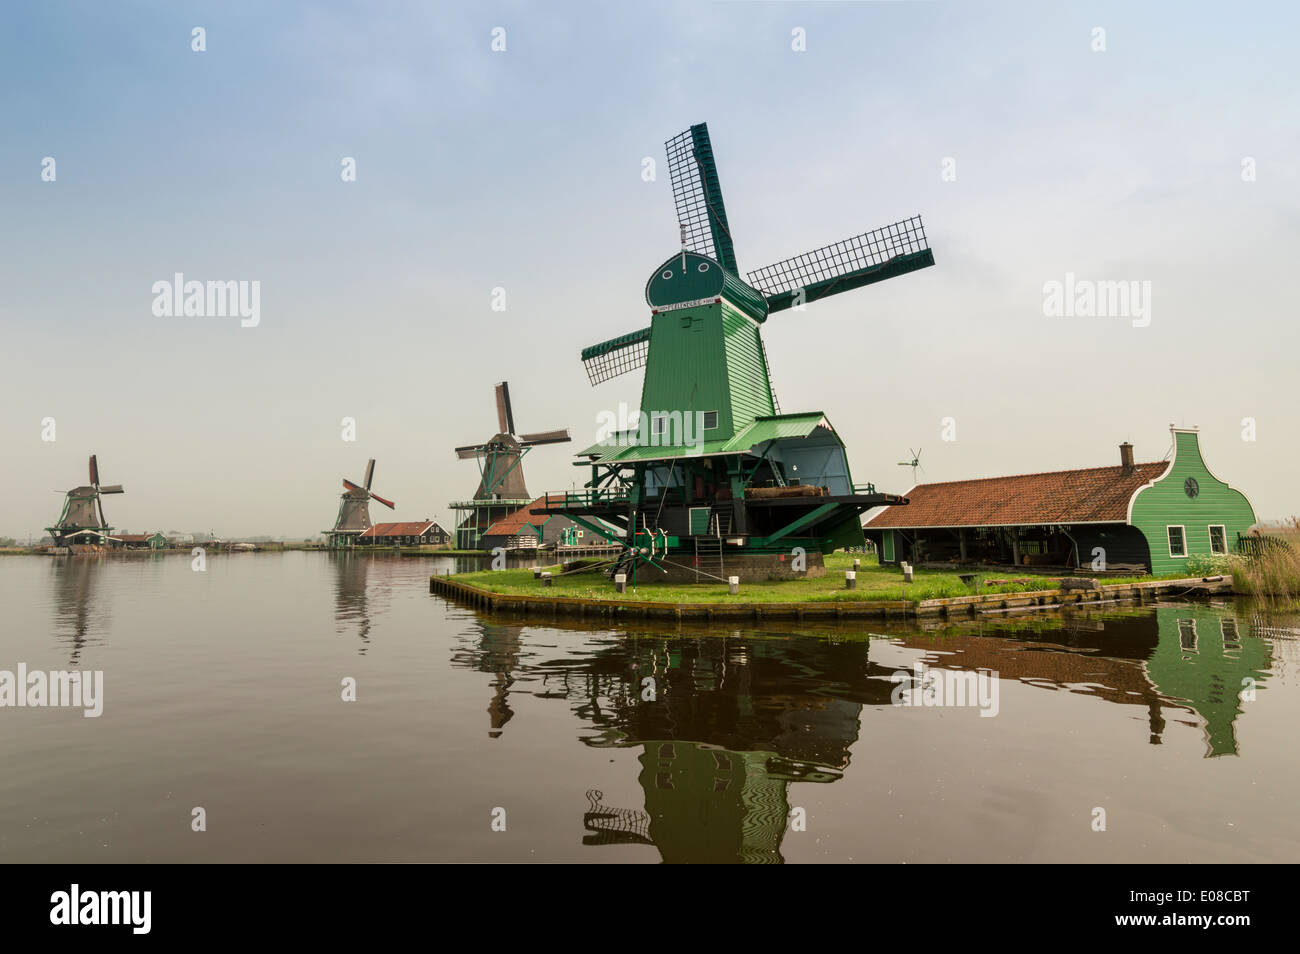 FOUR DUTCH WINDMILLS AND THE CANAL AT ZAANSE SCHANS NETHERLANDS IN SPRINGTIME - Stock Image